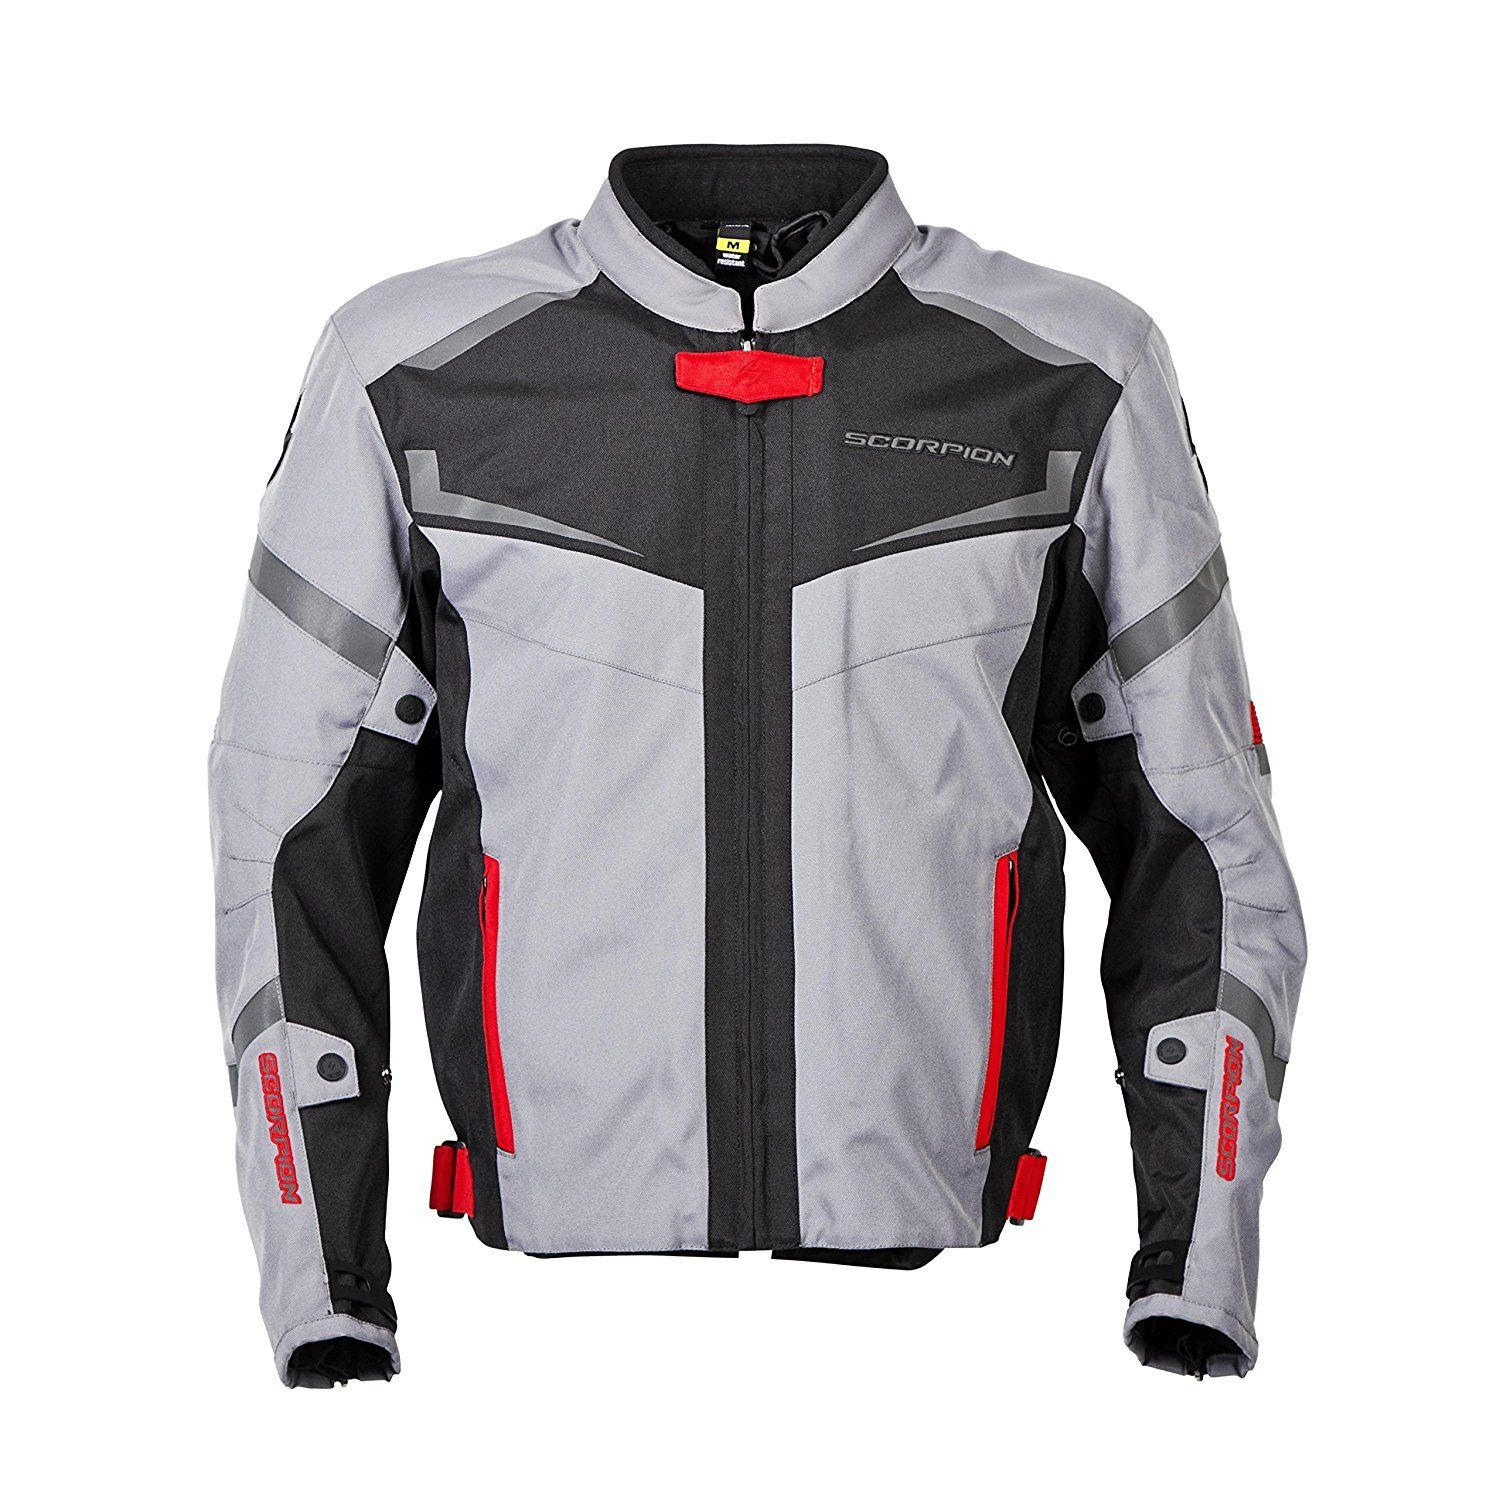 SCORPION EXO Men's Phalanx Motorcycle Jacket Removable Liner DARK GREY S-3XL 14402-6